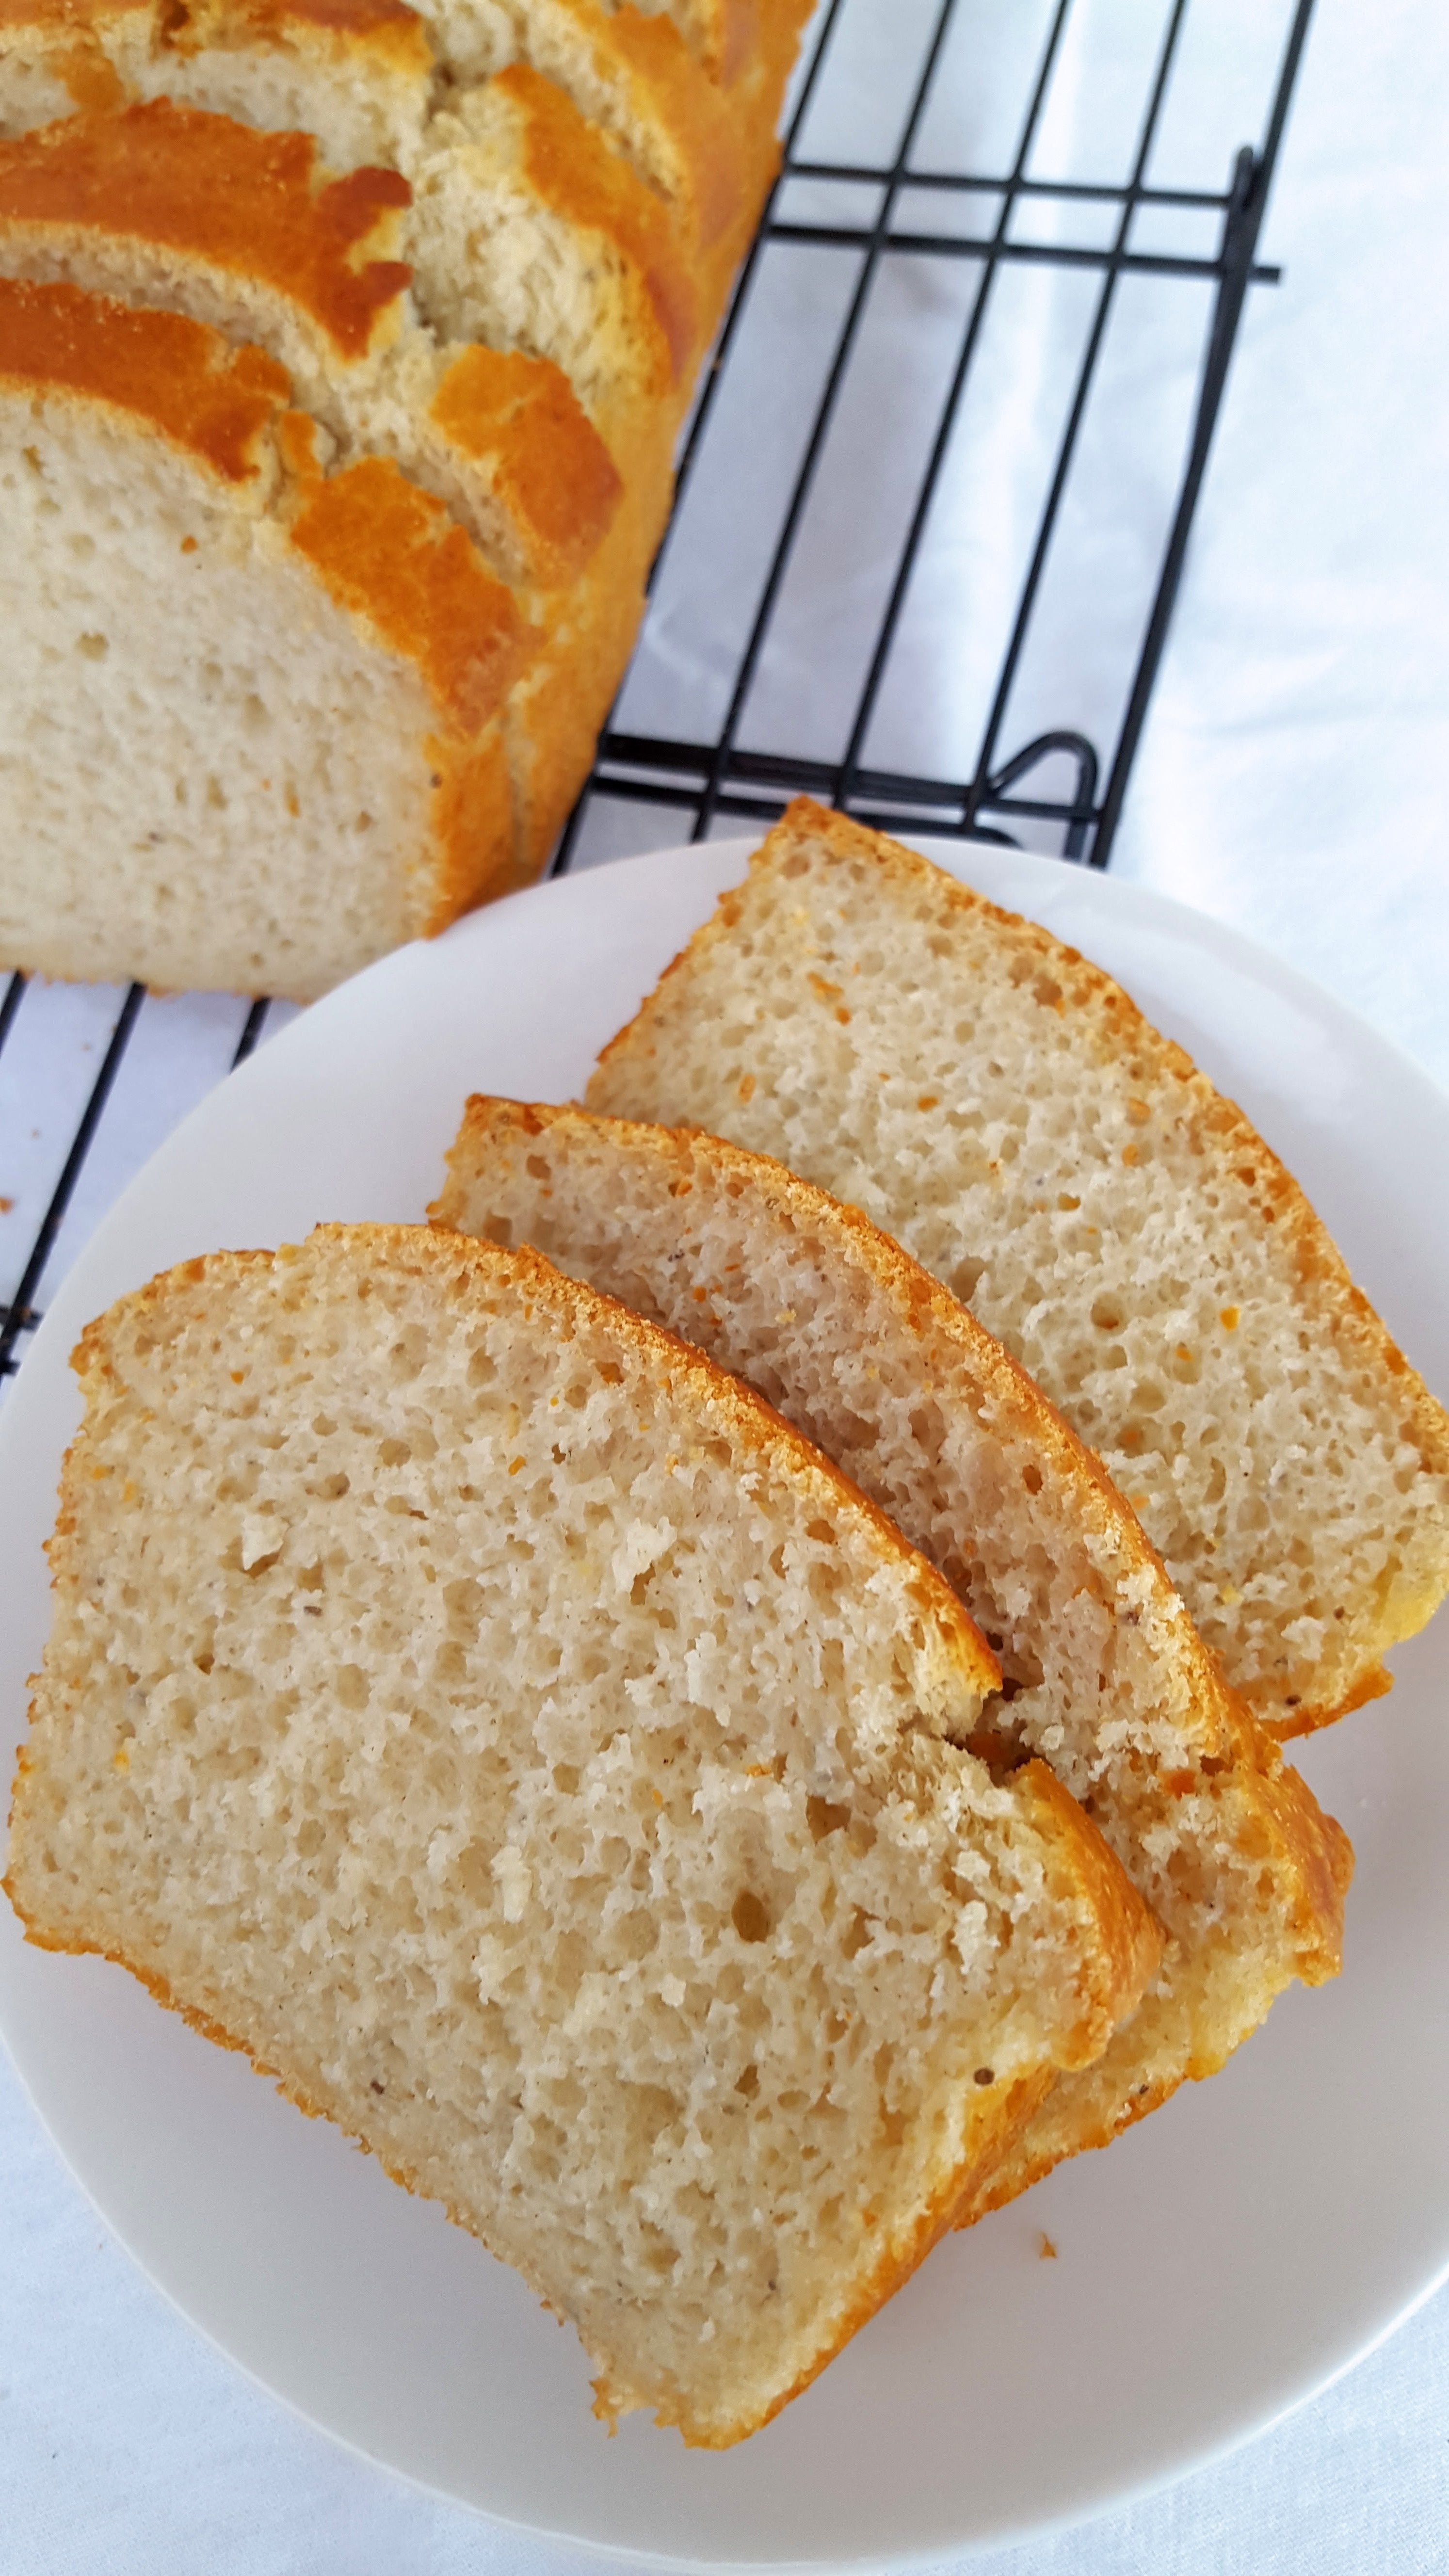 Amazing Gluten Free White Bread Without Xanthan Gum Plus 7 Tips For Making It Recipe Food Gluten Free Baking Gluten Free Bread